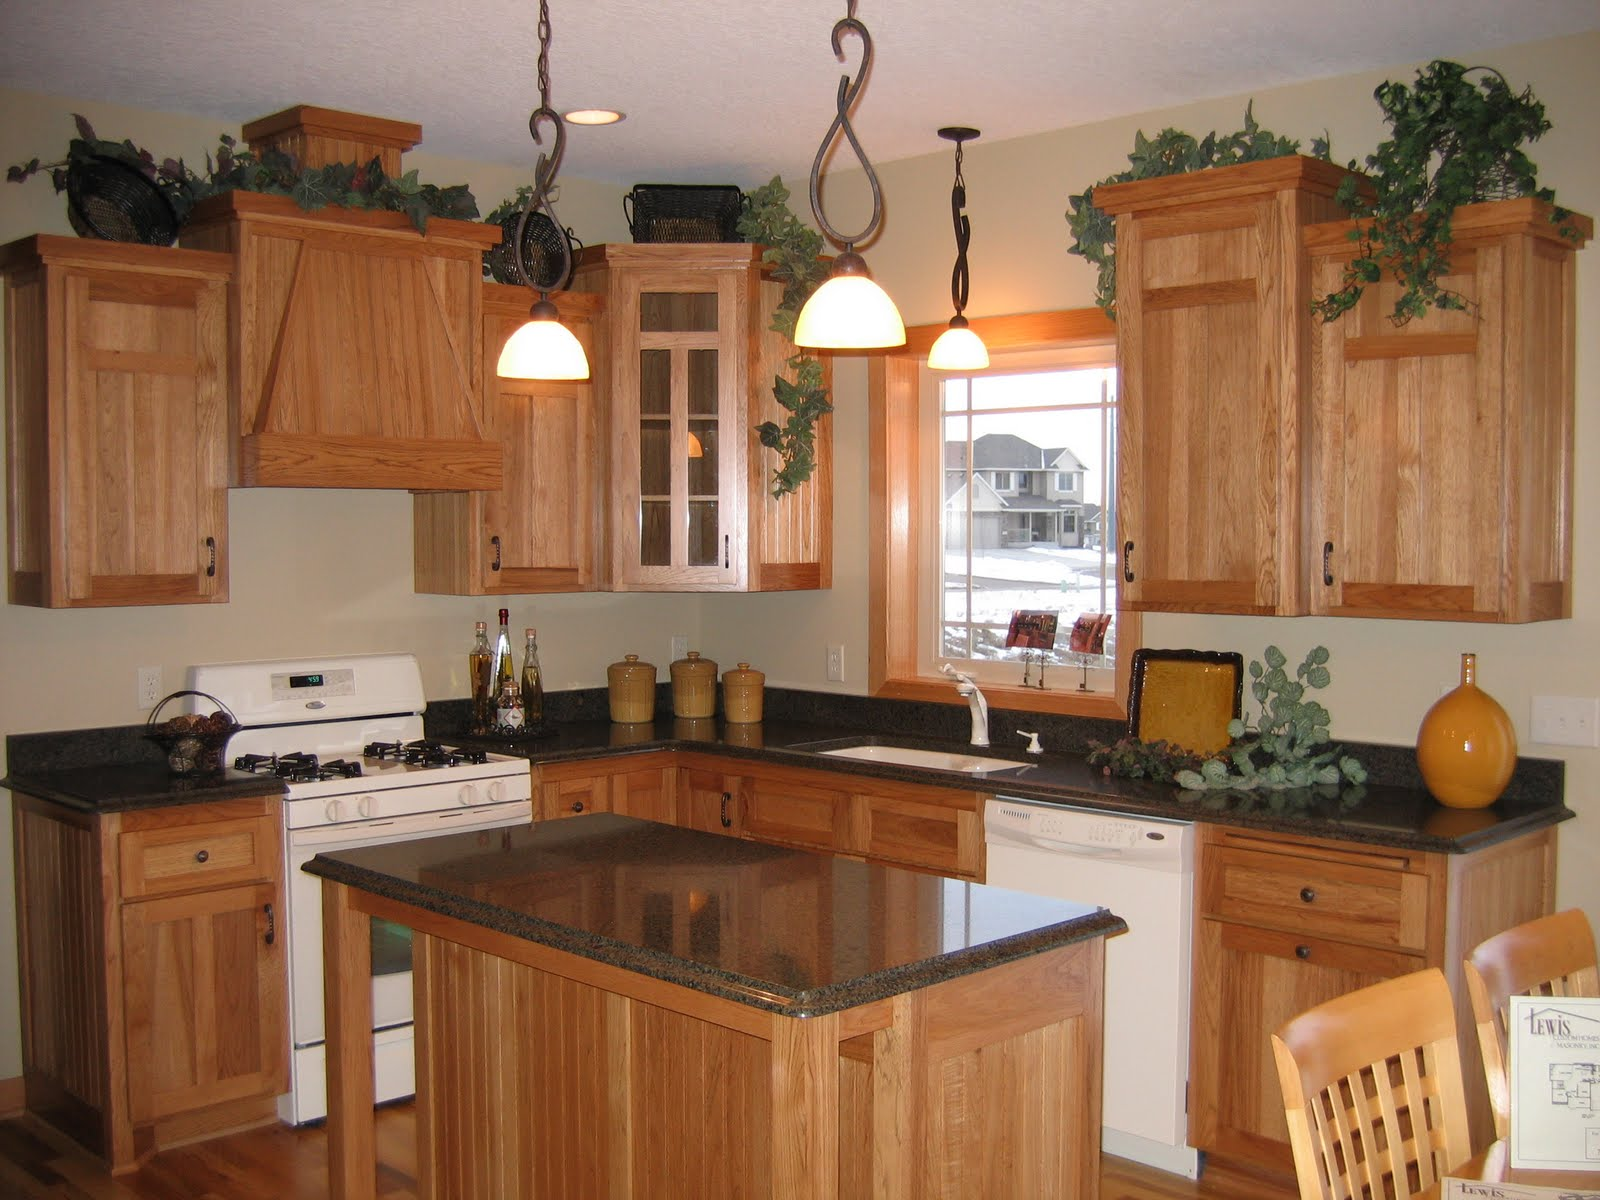 Kitchen Cabinets Kitchen Cabinets Sarasota  Florida. Living Room Storage Black. Native Living Room Design. Royal Blue And Silver Living Room. Villa Living Room Interior Design. Living Room Hookah Bar. Living Room Victorian Coffee Table. Living Room Decor Brown And Green. Modern Victorian Living Room Decor